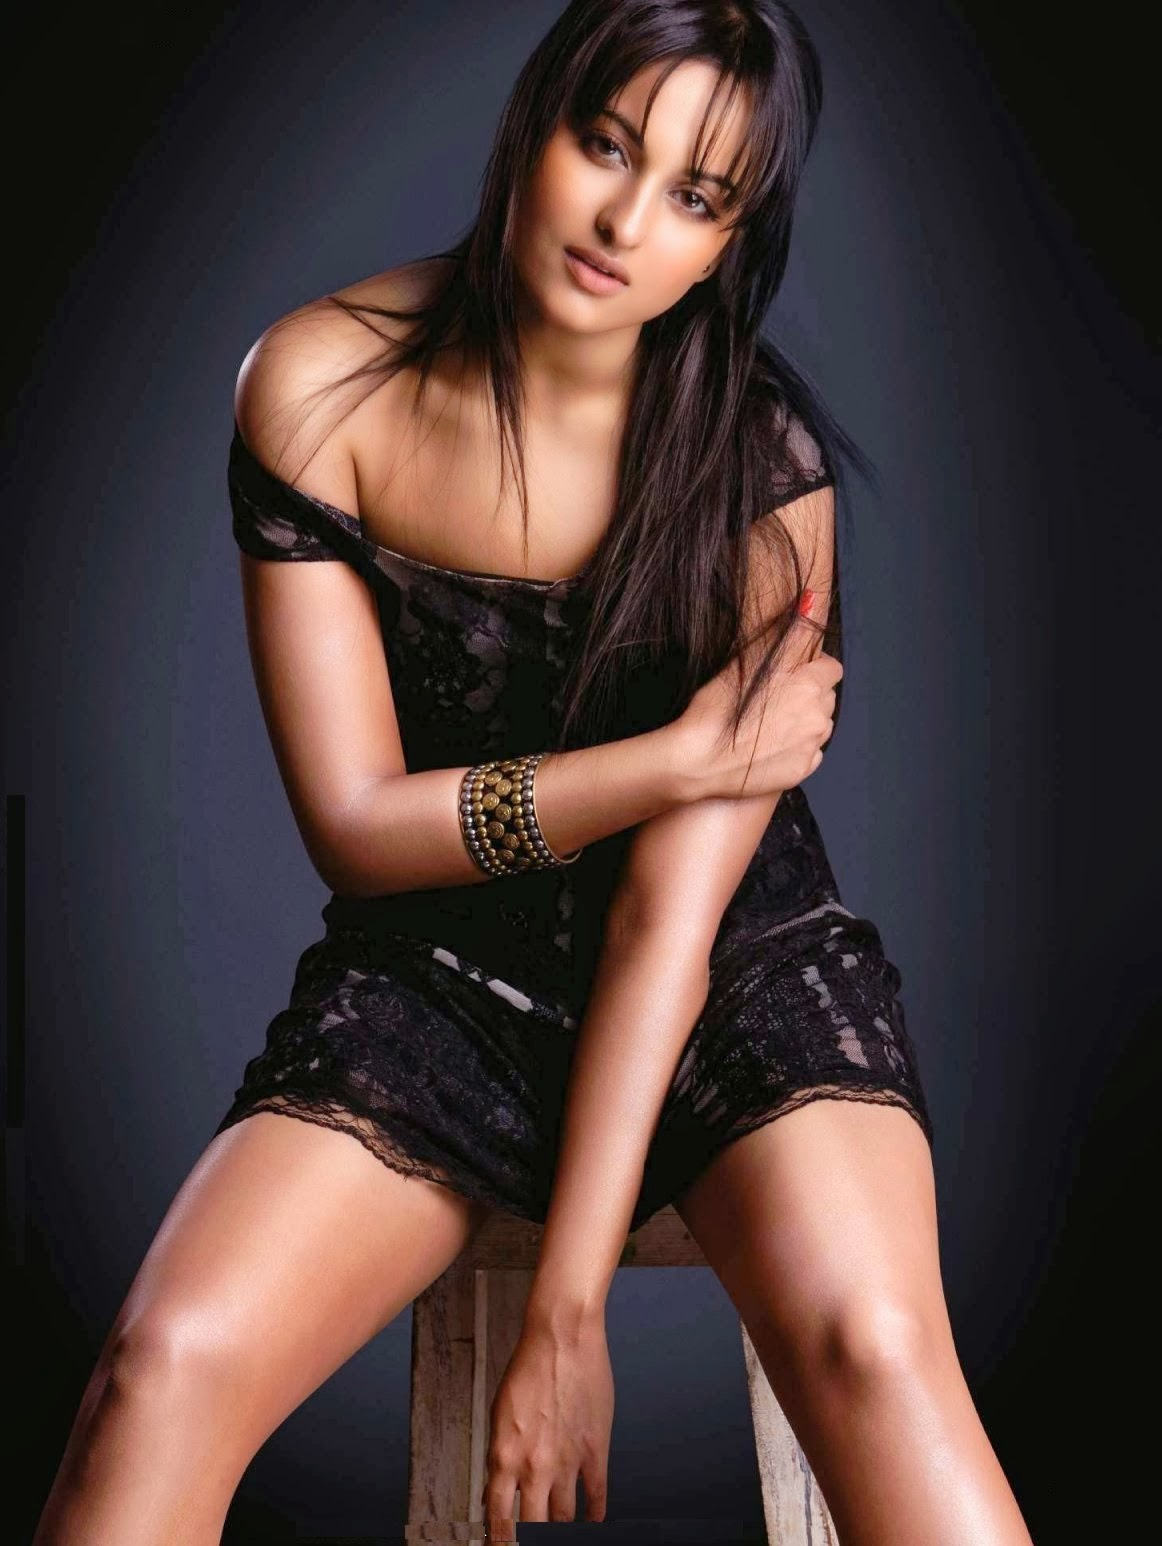 Free Download Full Hd Hot Wallpapers Bollywood Actress -4809